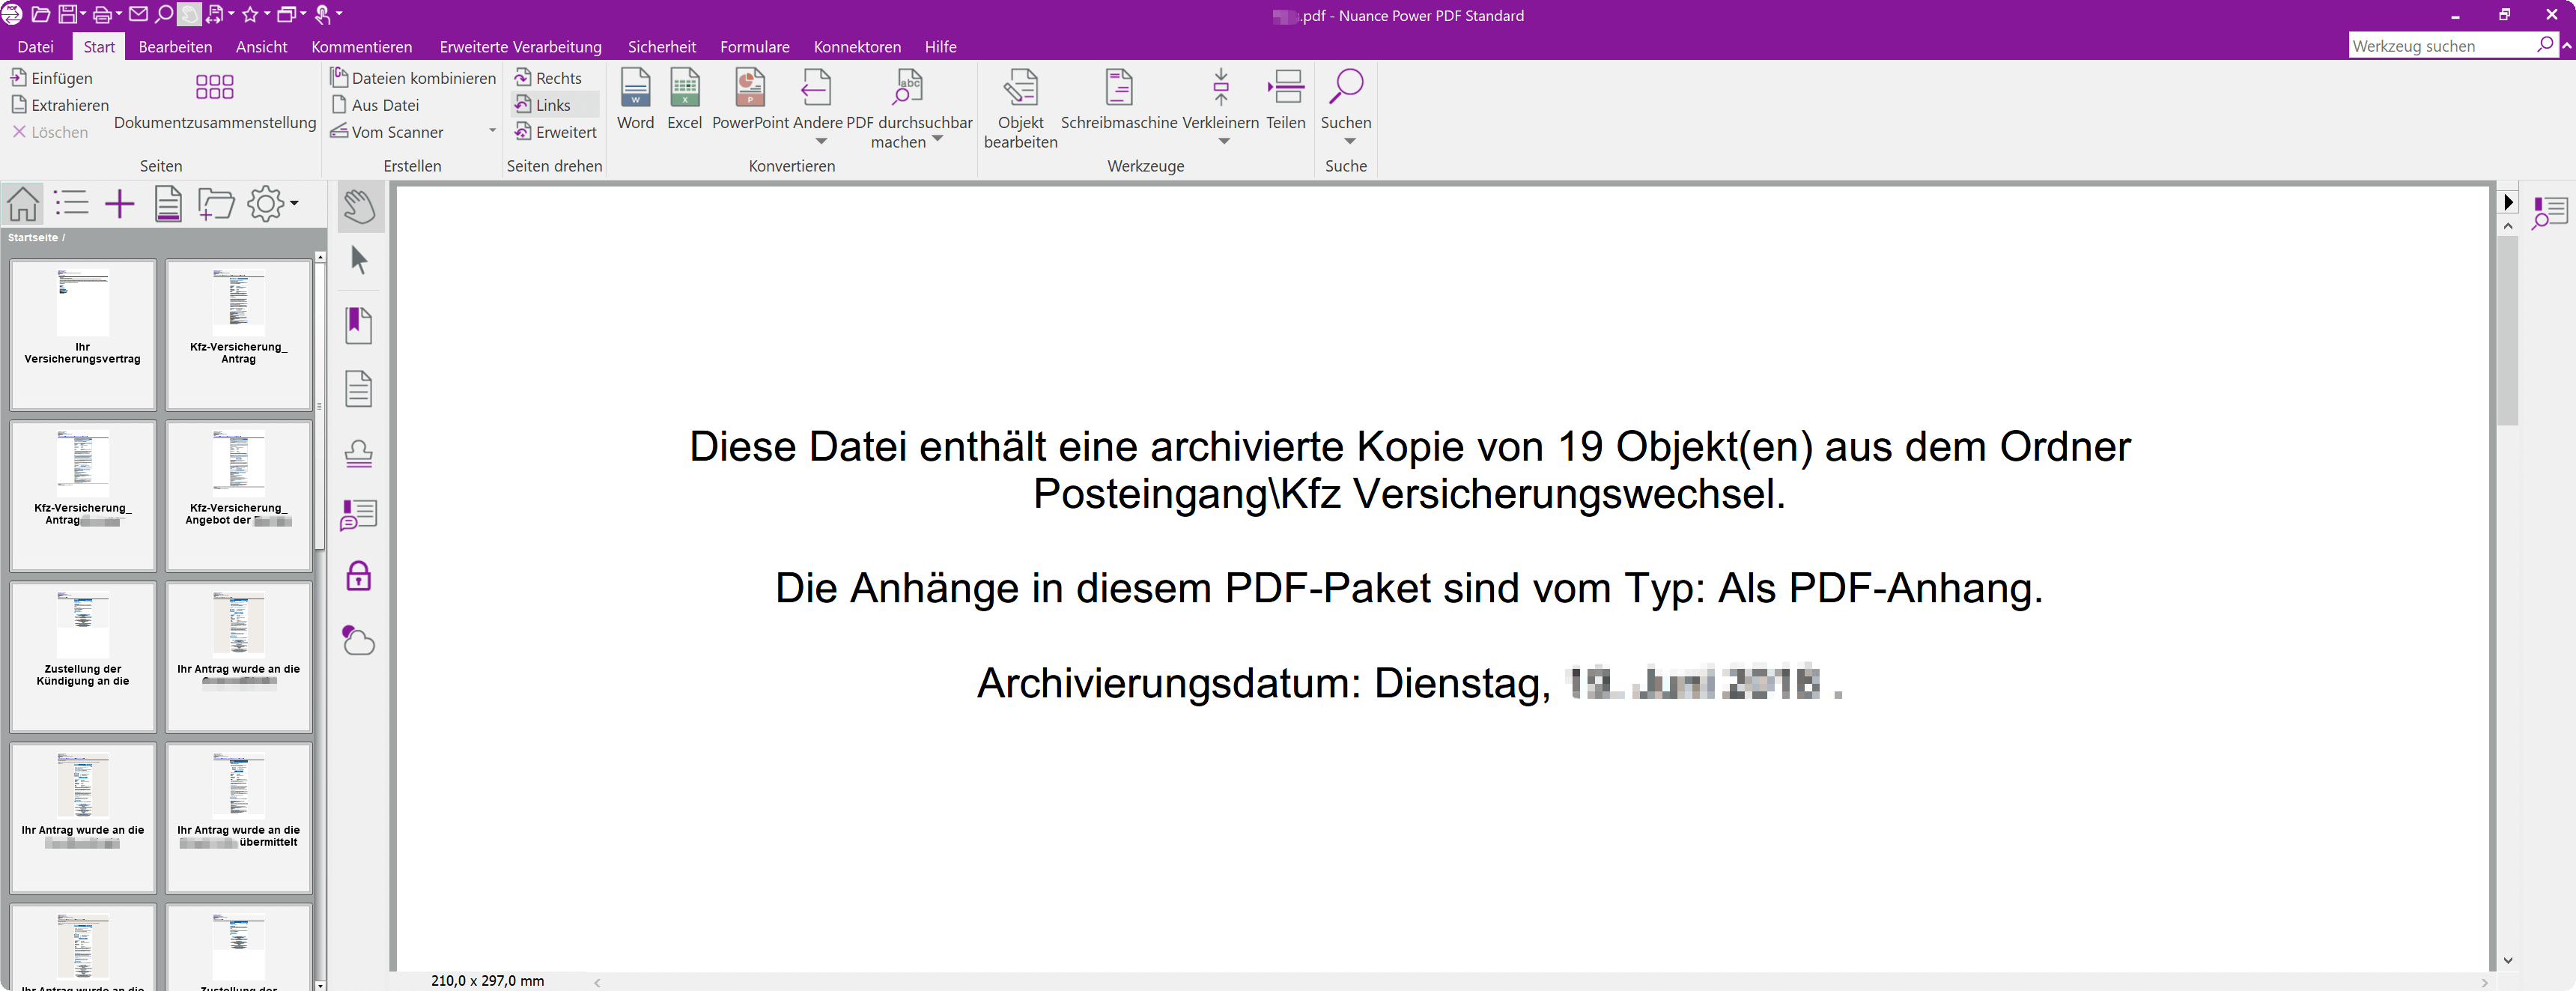 4. E-Mail Archivierung Nuance Power PDF